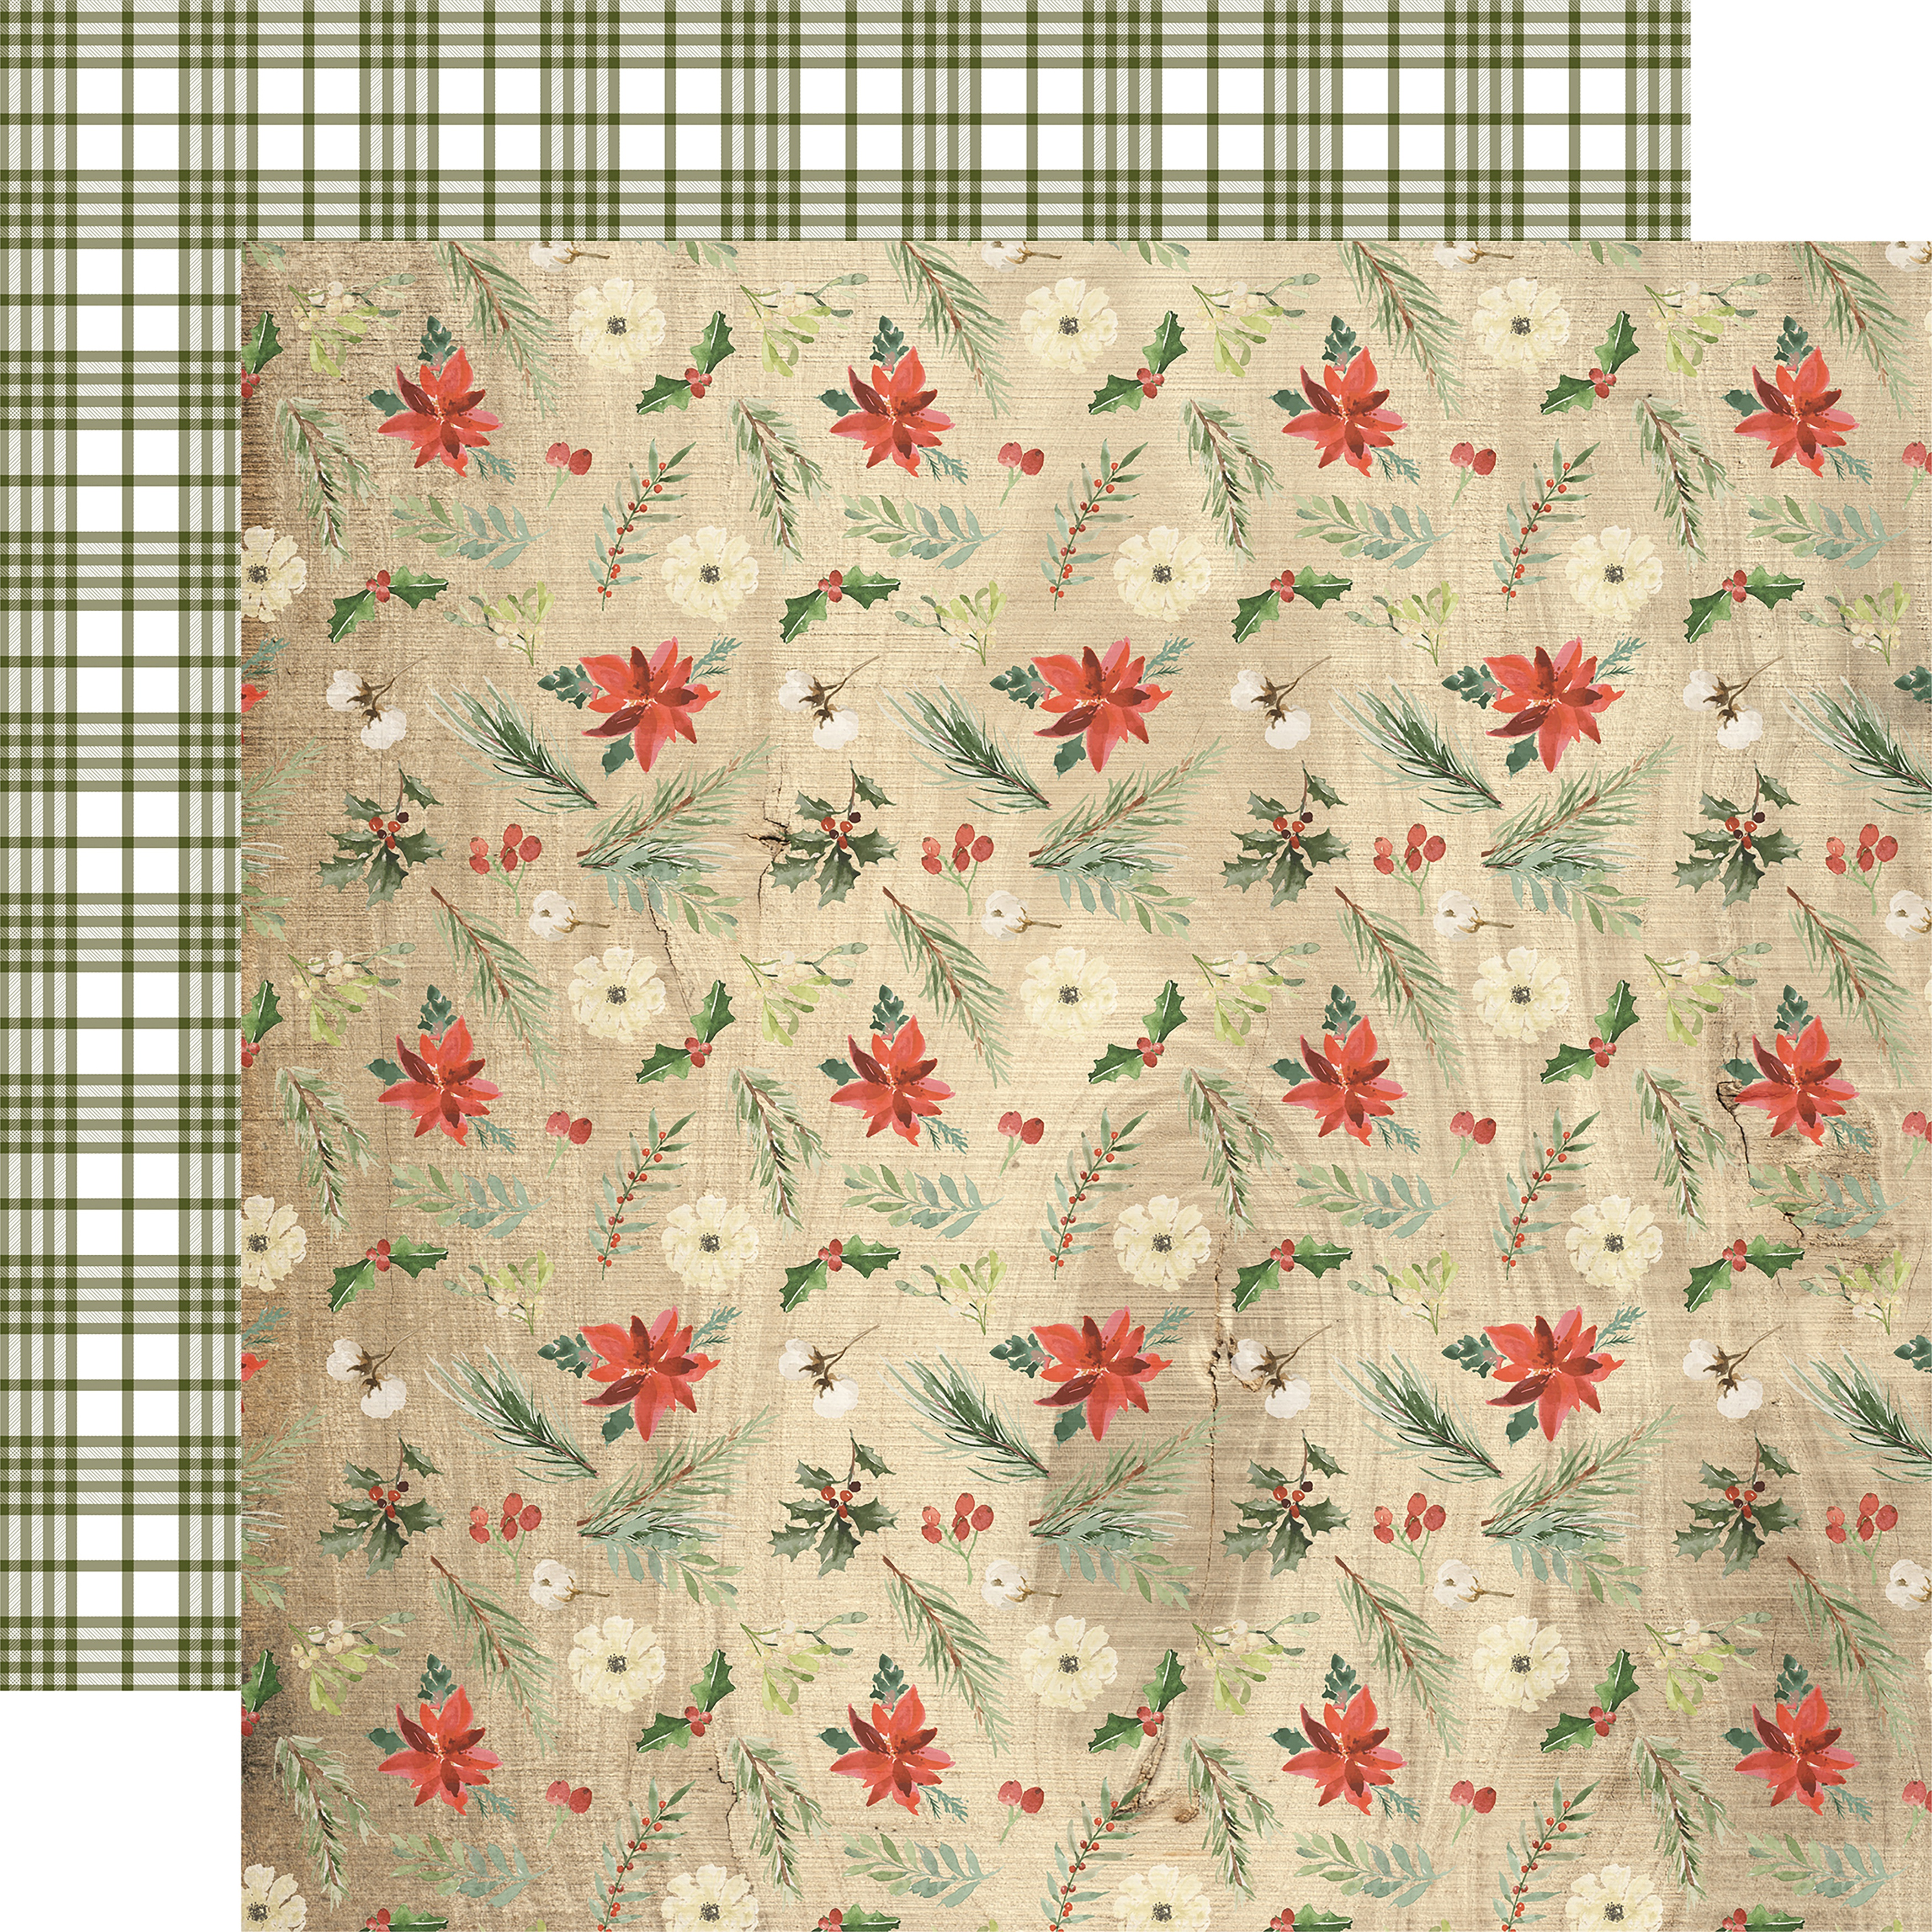 PPR - CHRISTMAS WINTER FLORAL